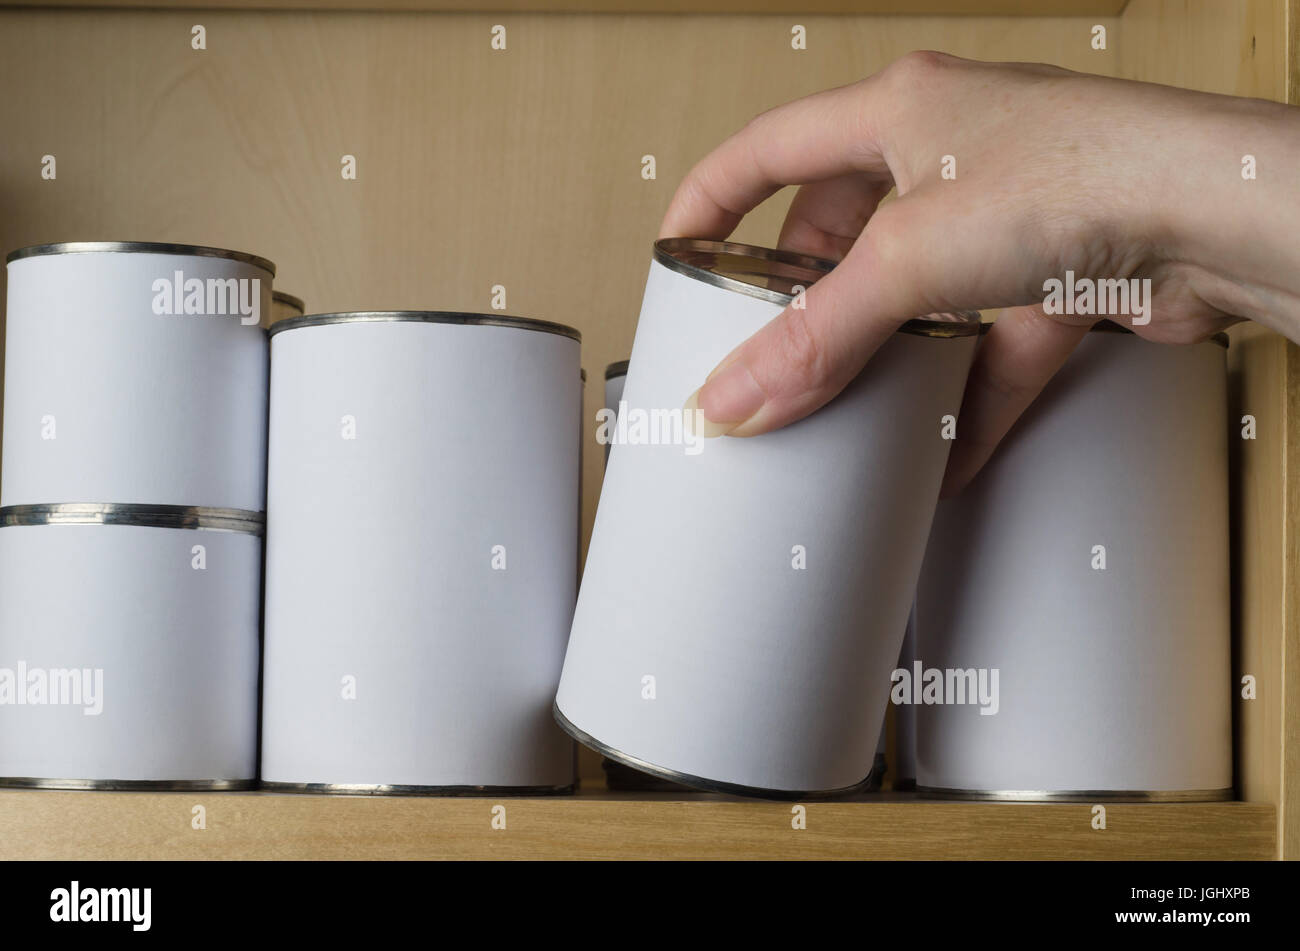 A selection of tin cans in various sizes on a shelf, with female hand reaching in from the right to select one. - Stock Image